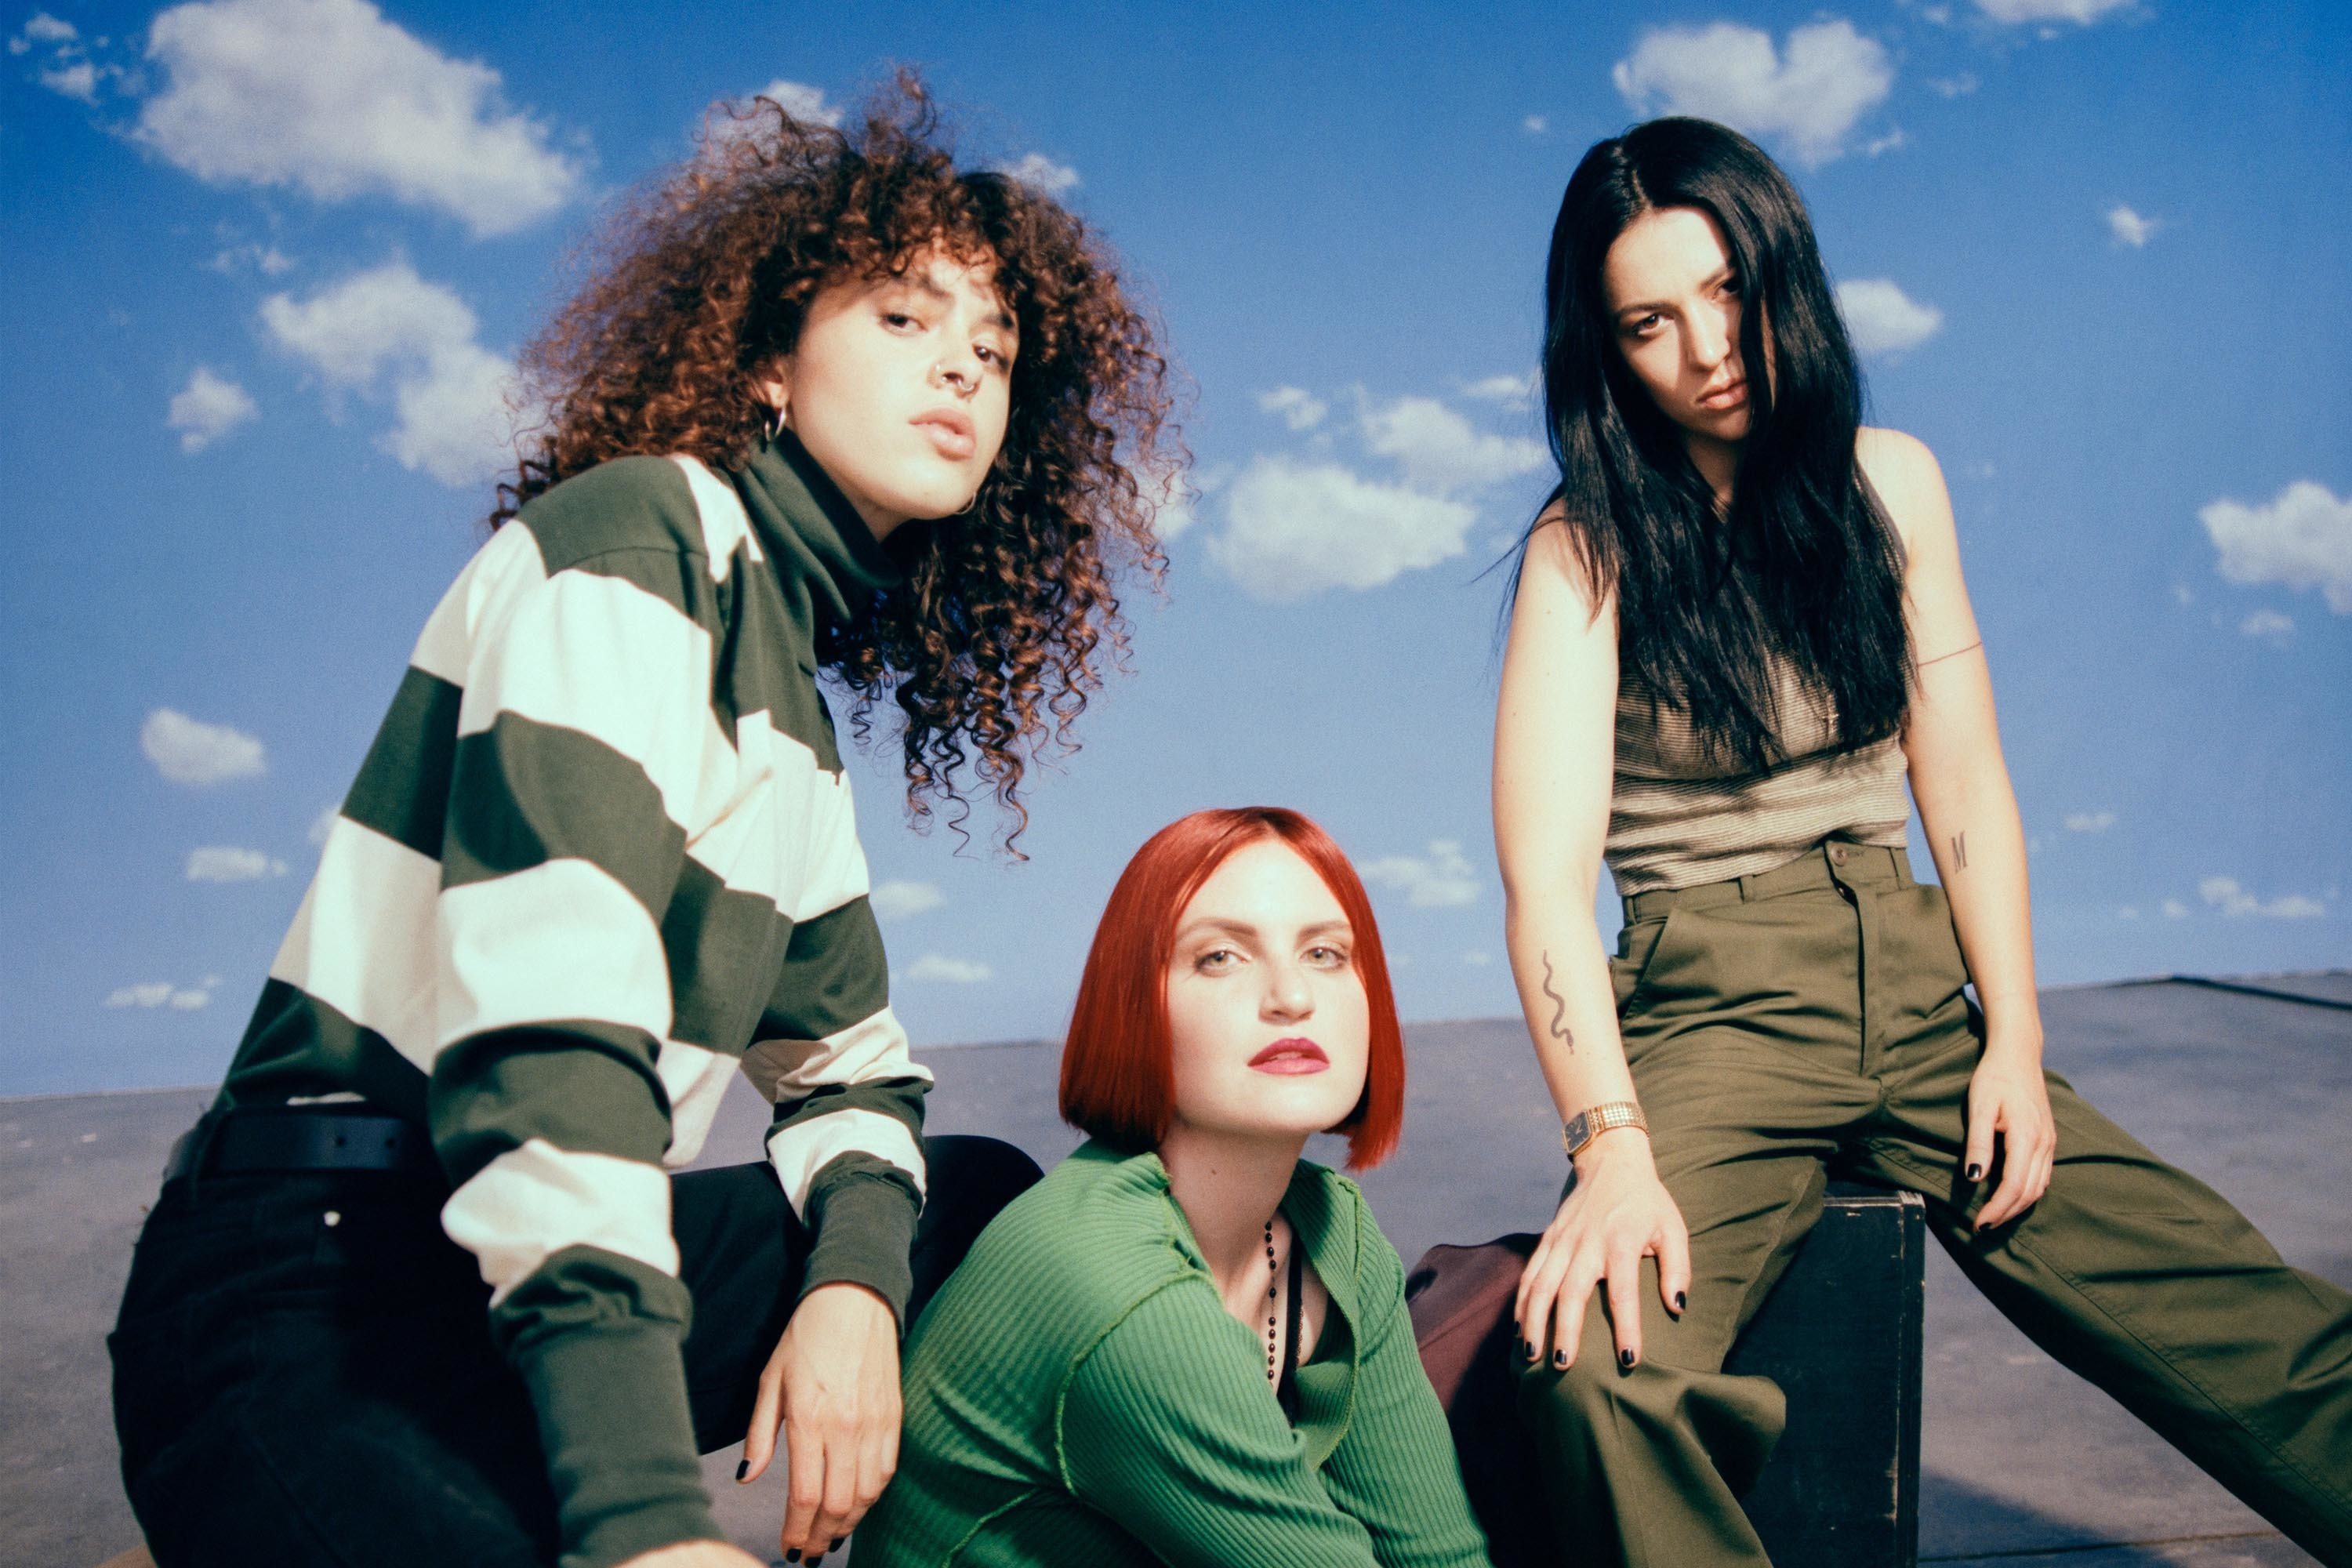 MUNA announce second album with new track 'Number One Fan'